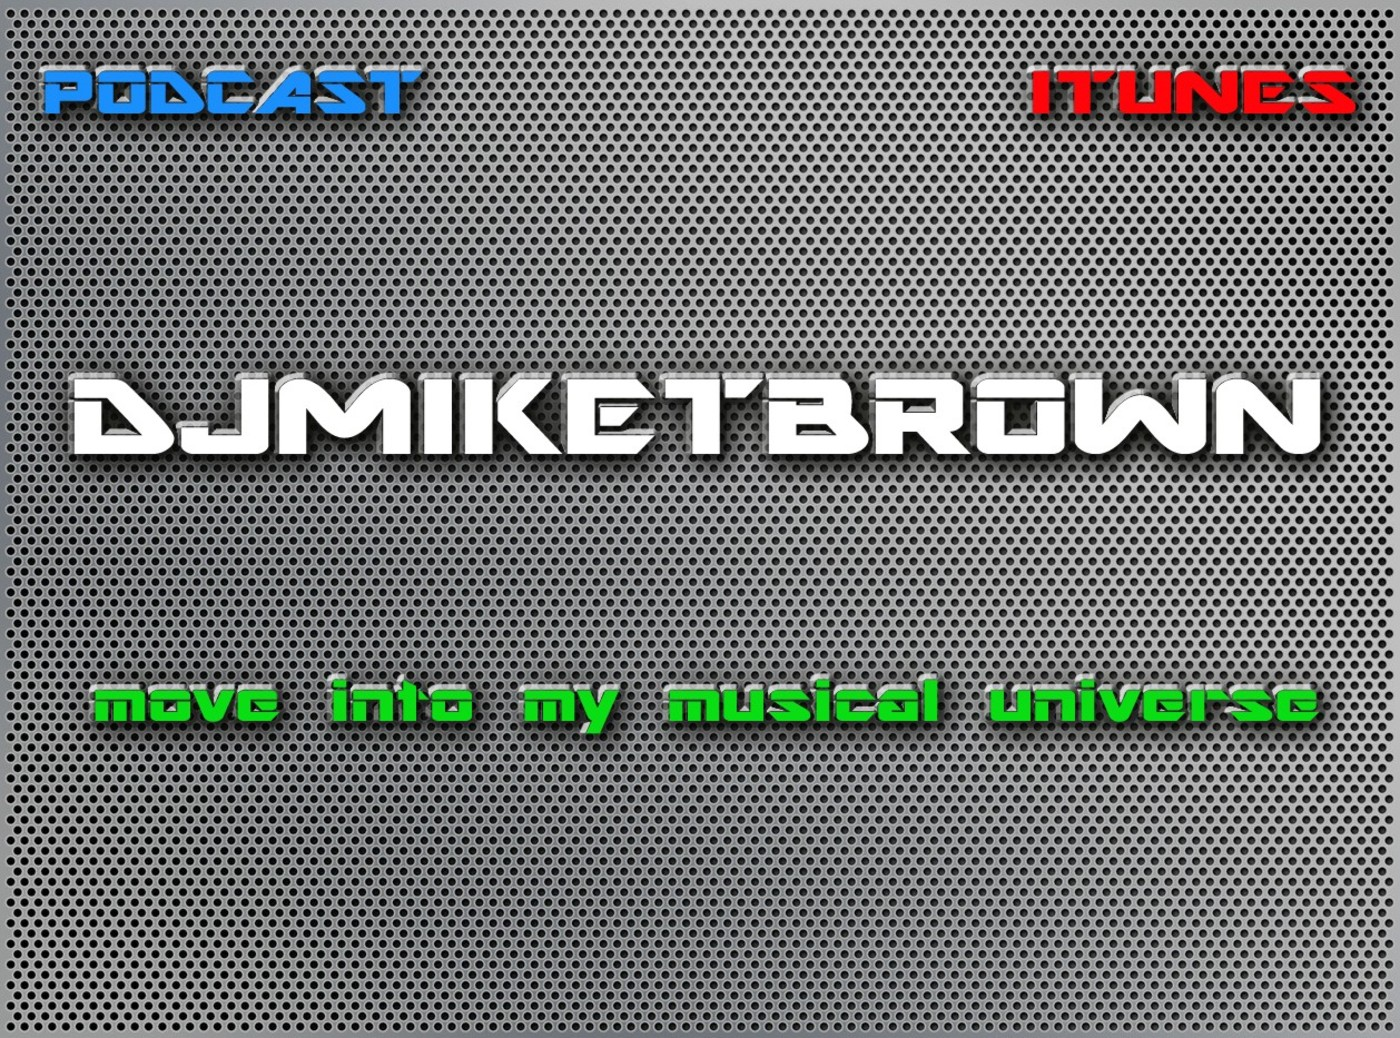 djmiketbrown's Podcast